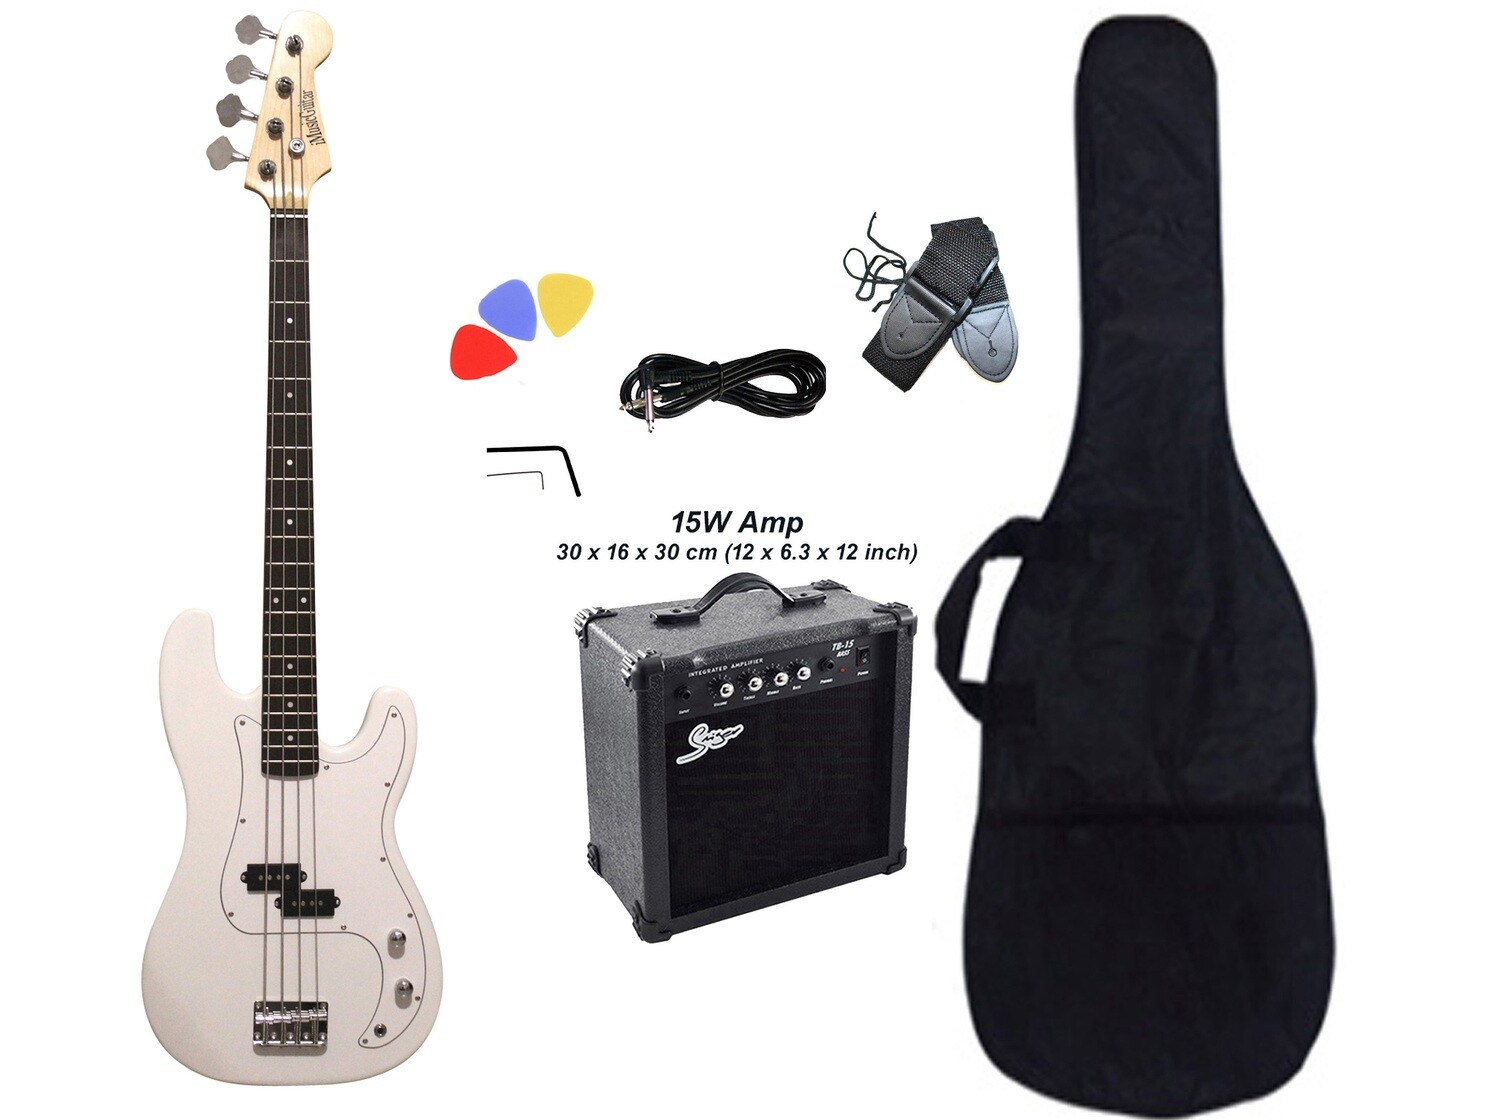 Bass Guitar with 15W Amp Package White for Beginners PB87215